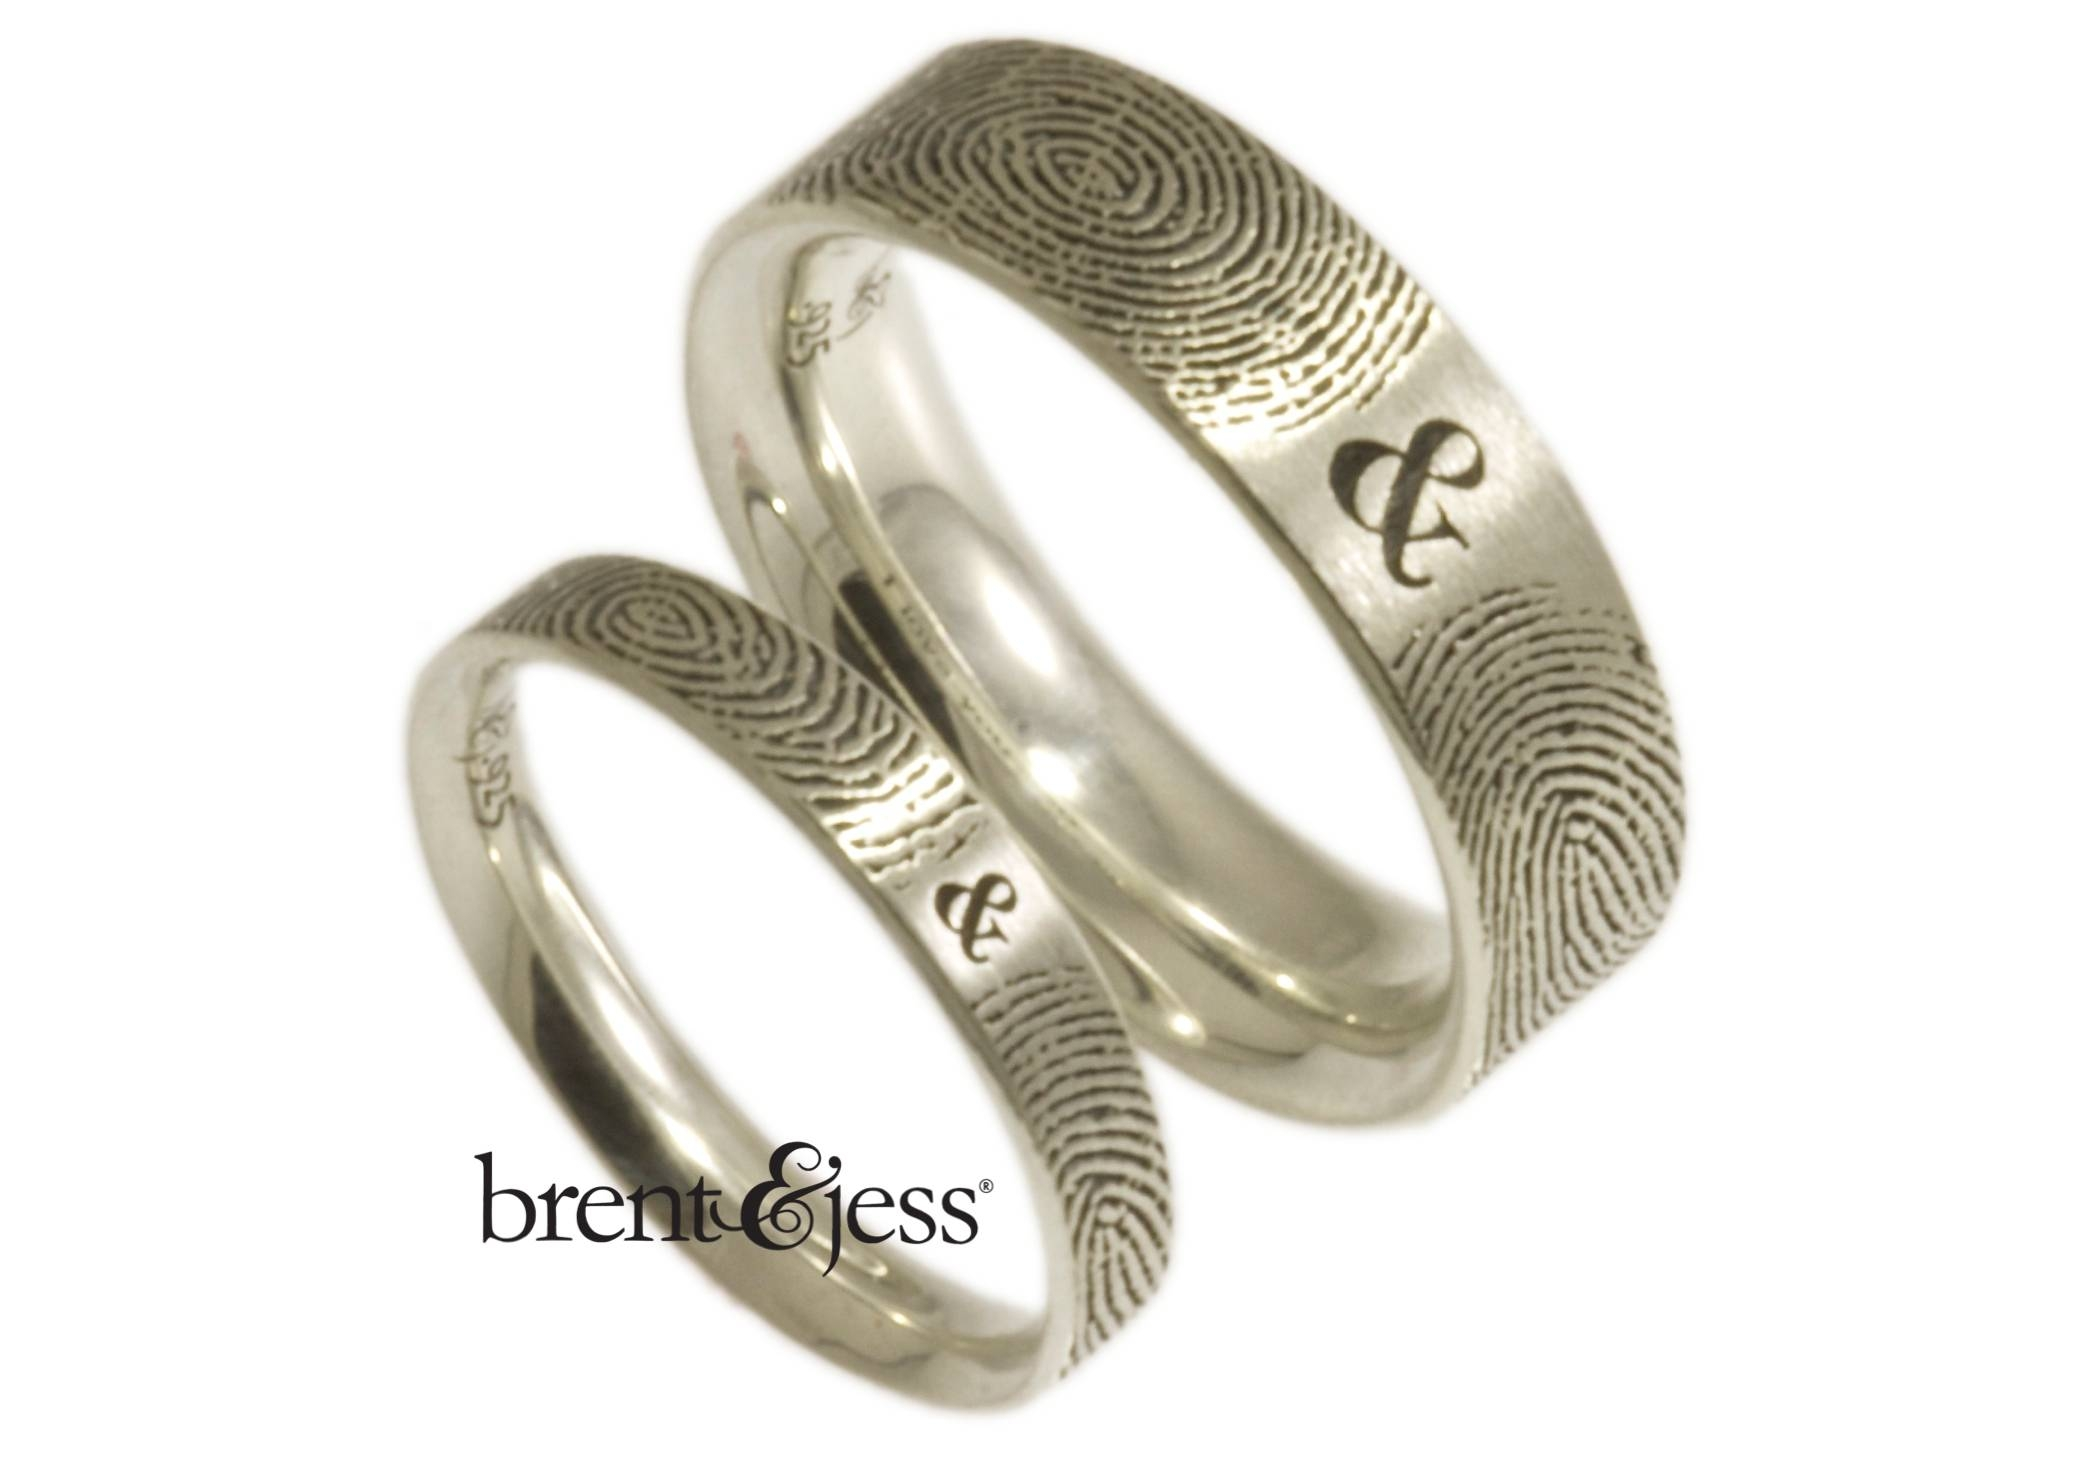 Brent&jess Fingerprint Wedding Rings · Ruffled With Fingerprint Wedding Rings (View 2 of 15)